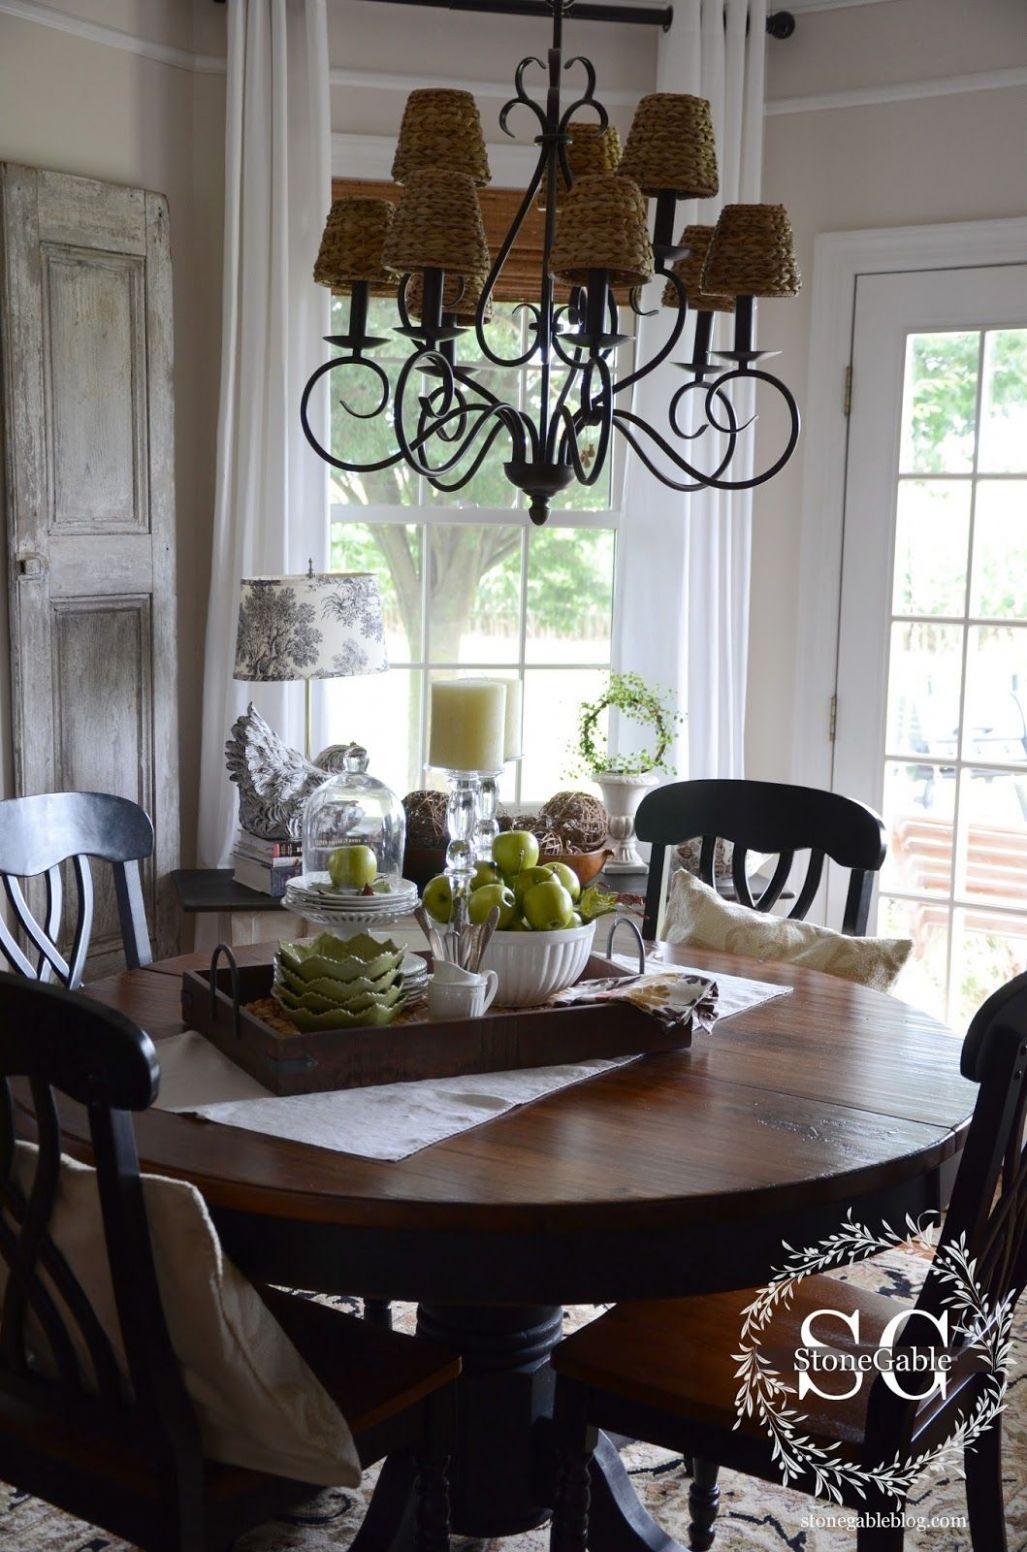 Dining Table Decor for an Everyday Look (With images) | Dining ...